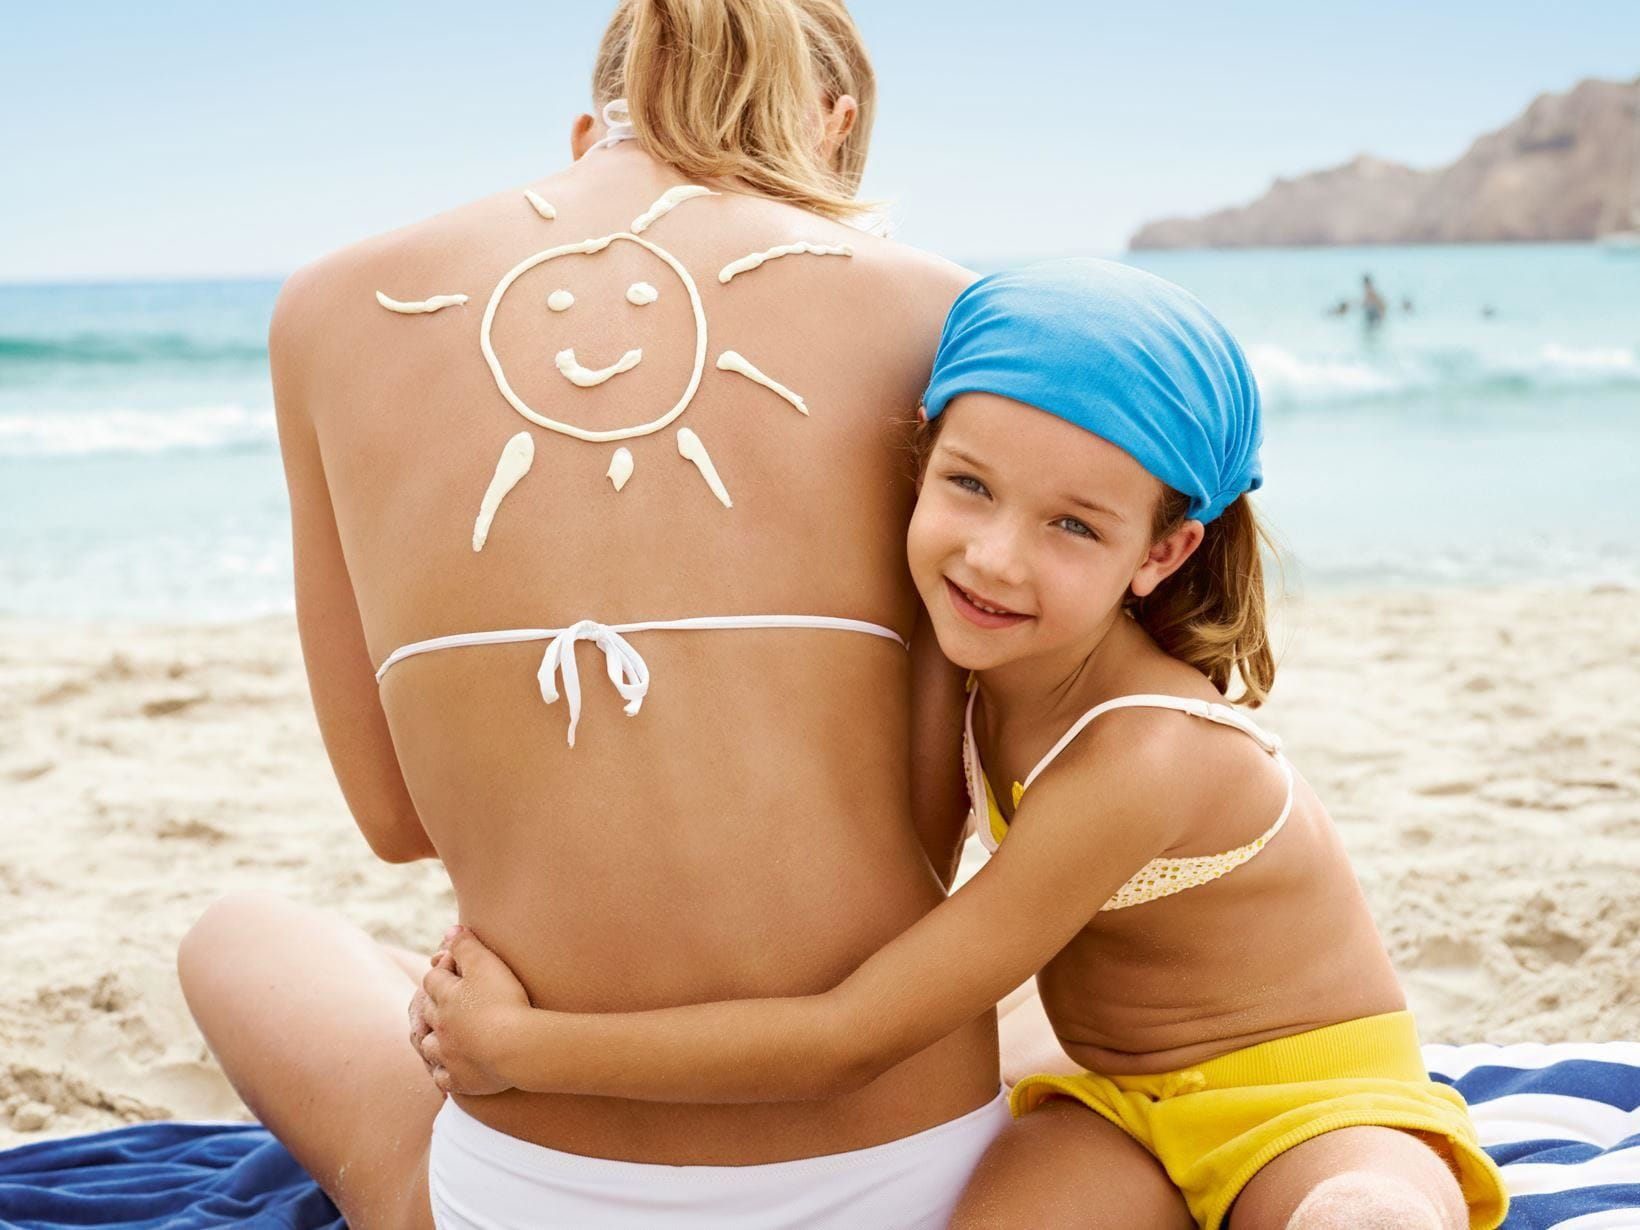 mother with sunscreen on her back and her daughter hugging her